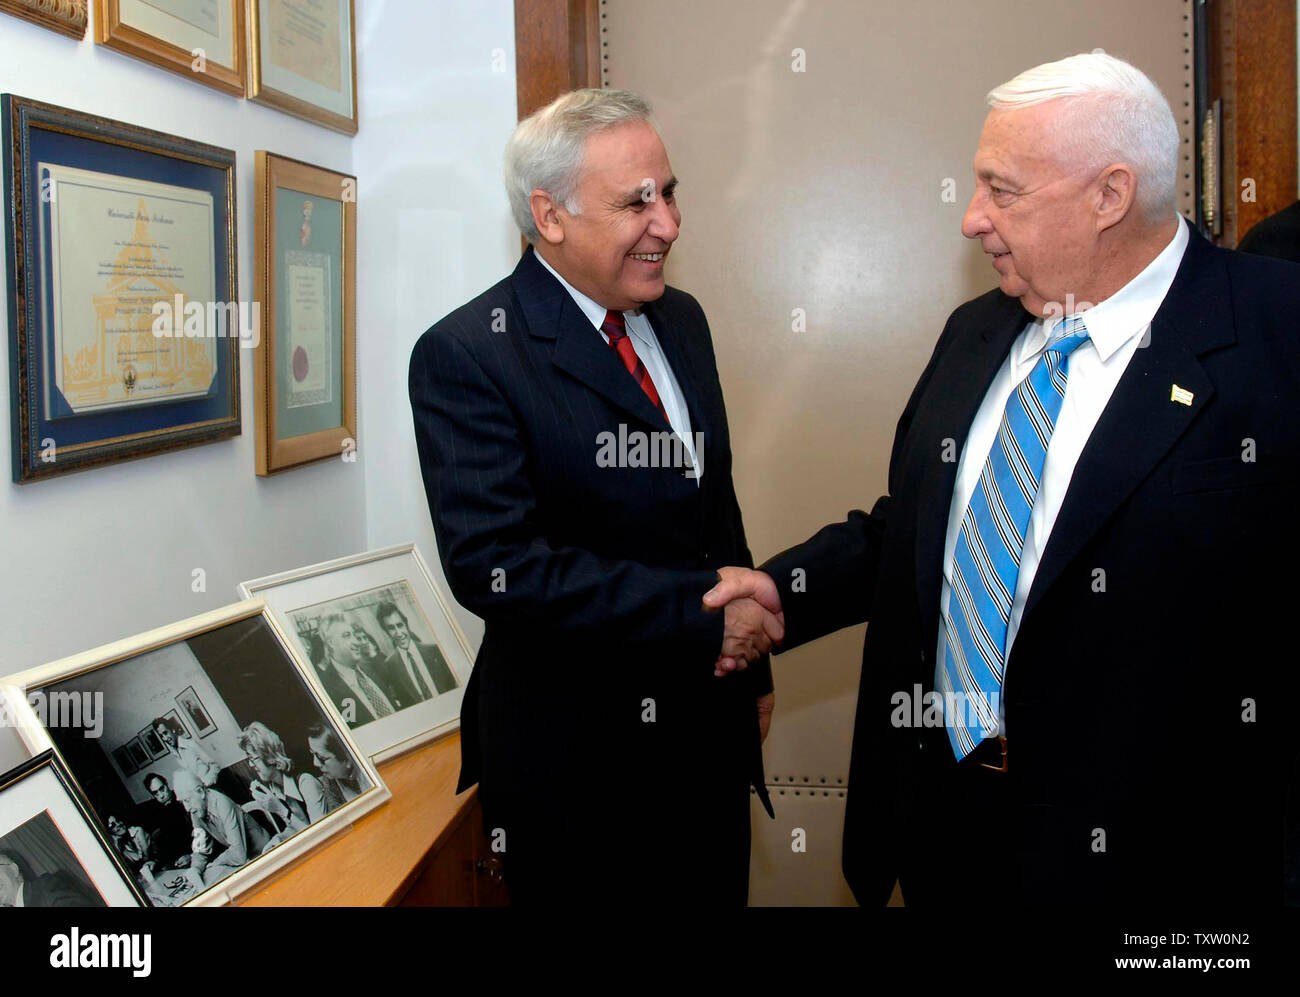 Israeli Prime Minister Ariel Sharon meets Israeli President Moshe Katsav at the presidential  residence in Jerusalem to ask for the Israeli parliament to be dissolved, resulting in early elections in March, November 21, 2005. Prime Minister Sharon will start a new centrist party, leaving the Likud Party in the upcoming election.  (UPI Photo/Avi Ohayon, GPO Photo) - Stock Image